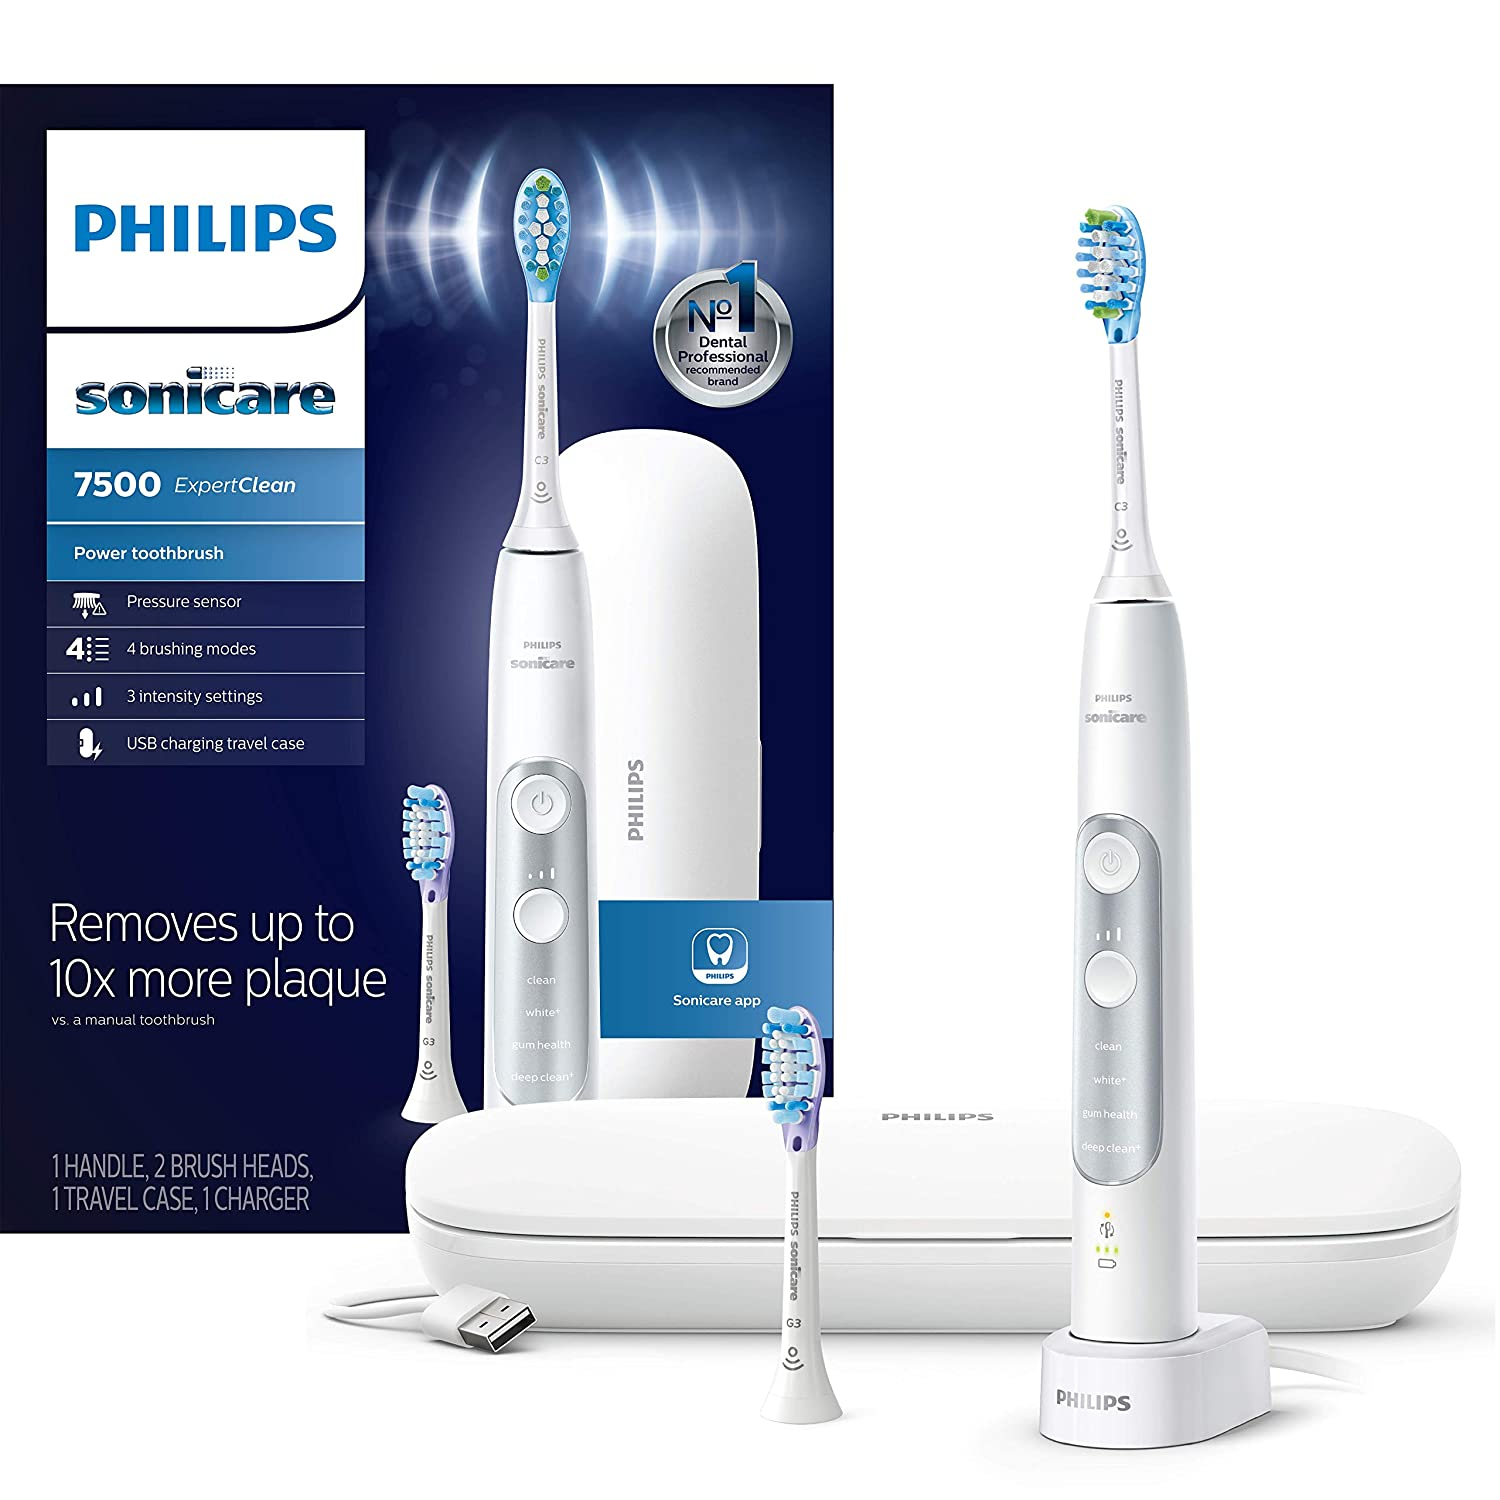 Philips Sonicare HX9690/06 ExpertClean 7500 Bluetooth Rechargeable Electric Toothbrush, White